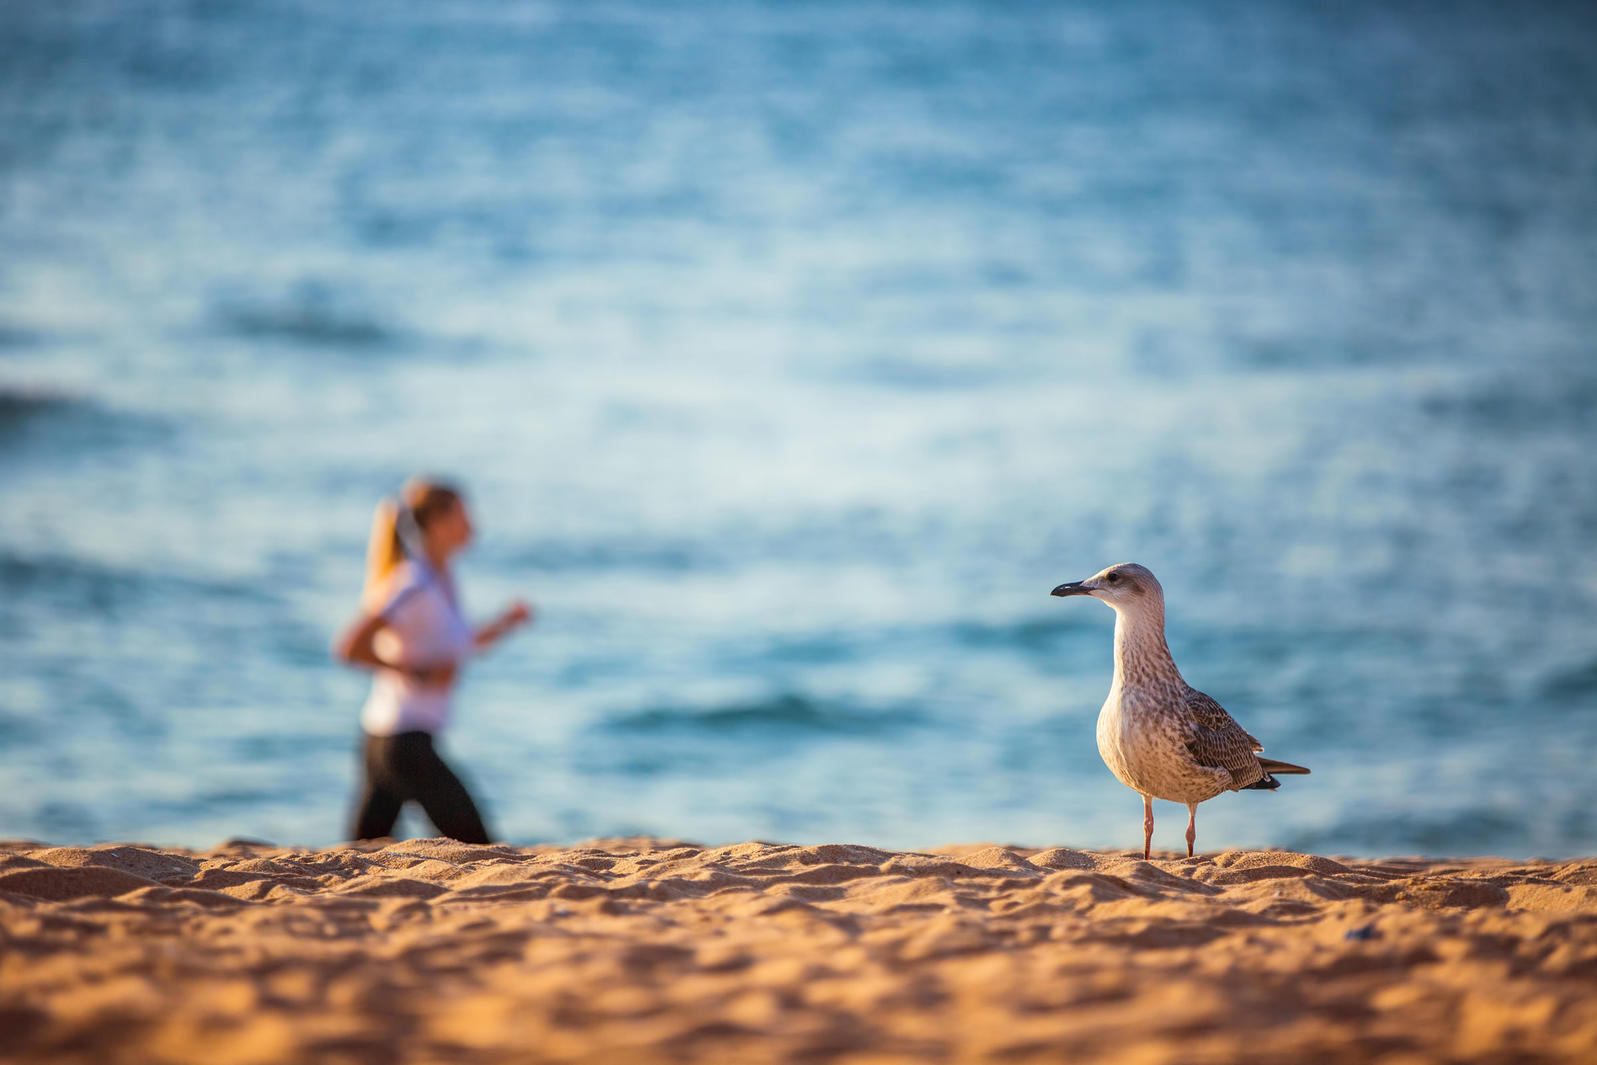 Beach runs can be a challenge, both for your calves and for your gull-ID skills. Valentin Valkov/Alamy